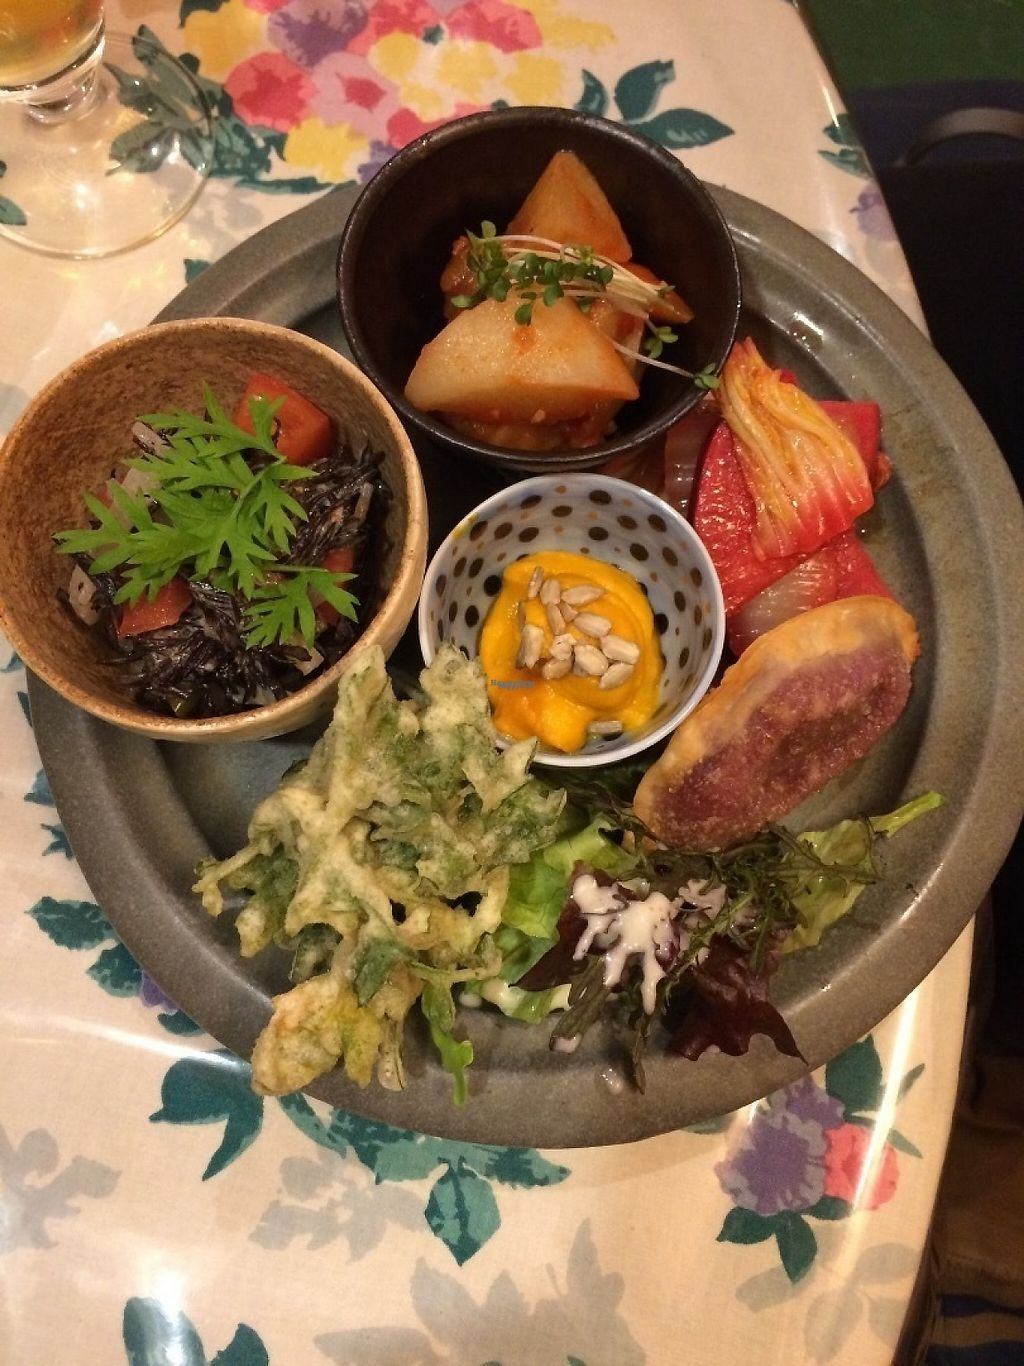 """Photo of CLOSED: Le Coccole  by <a href=""""/members/profile/Italian.vegan"""">Italian.vegan</a> <br/>Platter <br/> December 2, 2016  - <a href='/contact/abuse/image/25584/196454'>Report</a>"""